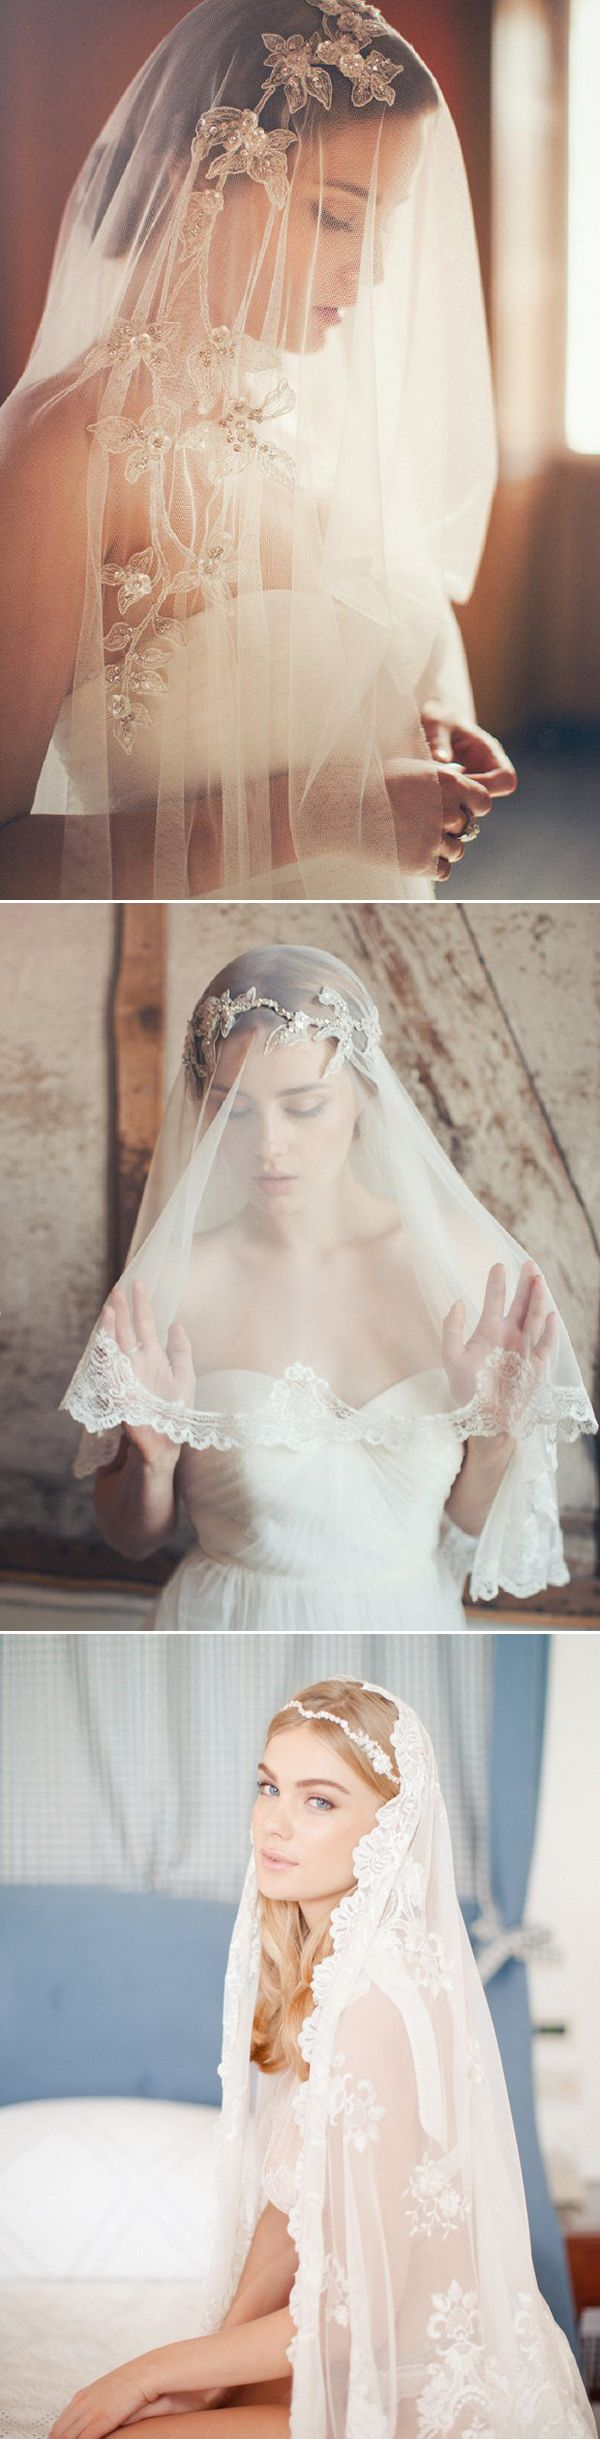 25 Stunning Lace Veils for Stylish Brides - Jannie Baltzer  Bridal Veils // Aisle Perfect